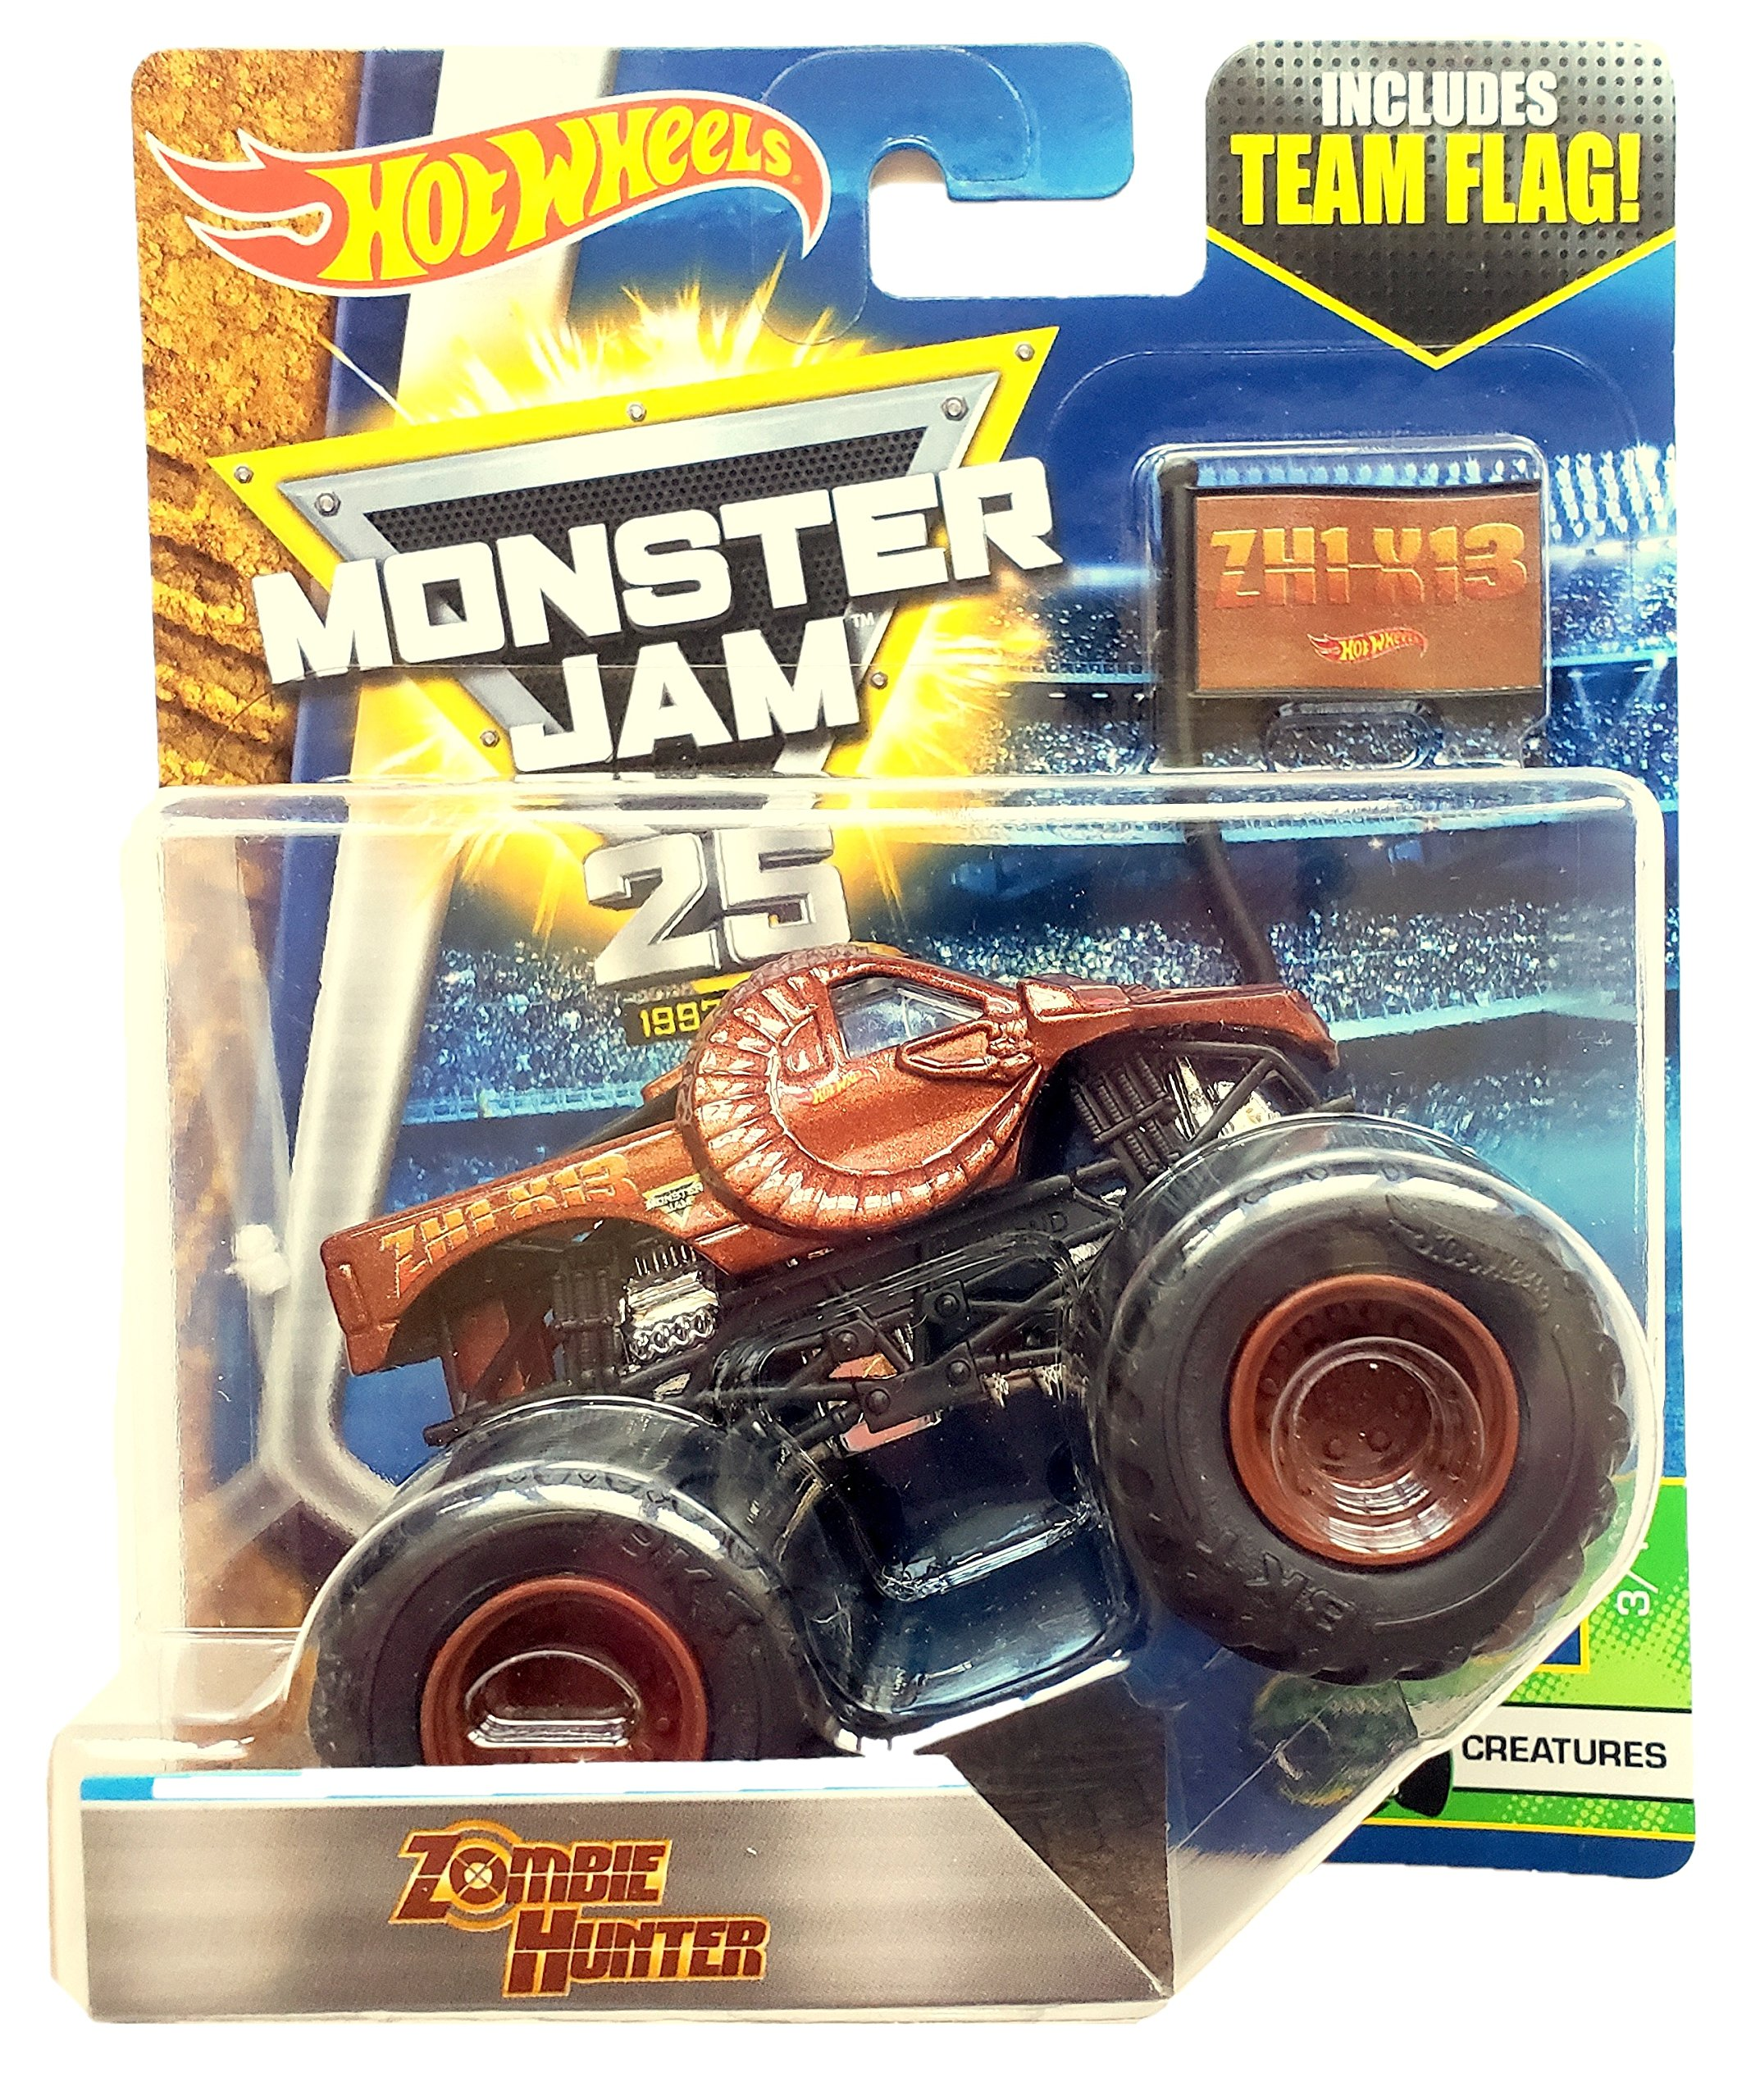 Hot Wheels Monster Jam Zombie Hunter con la bandera del equipo 2017